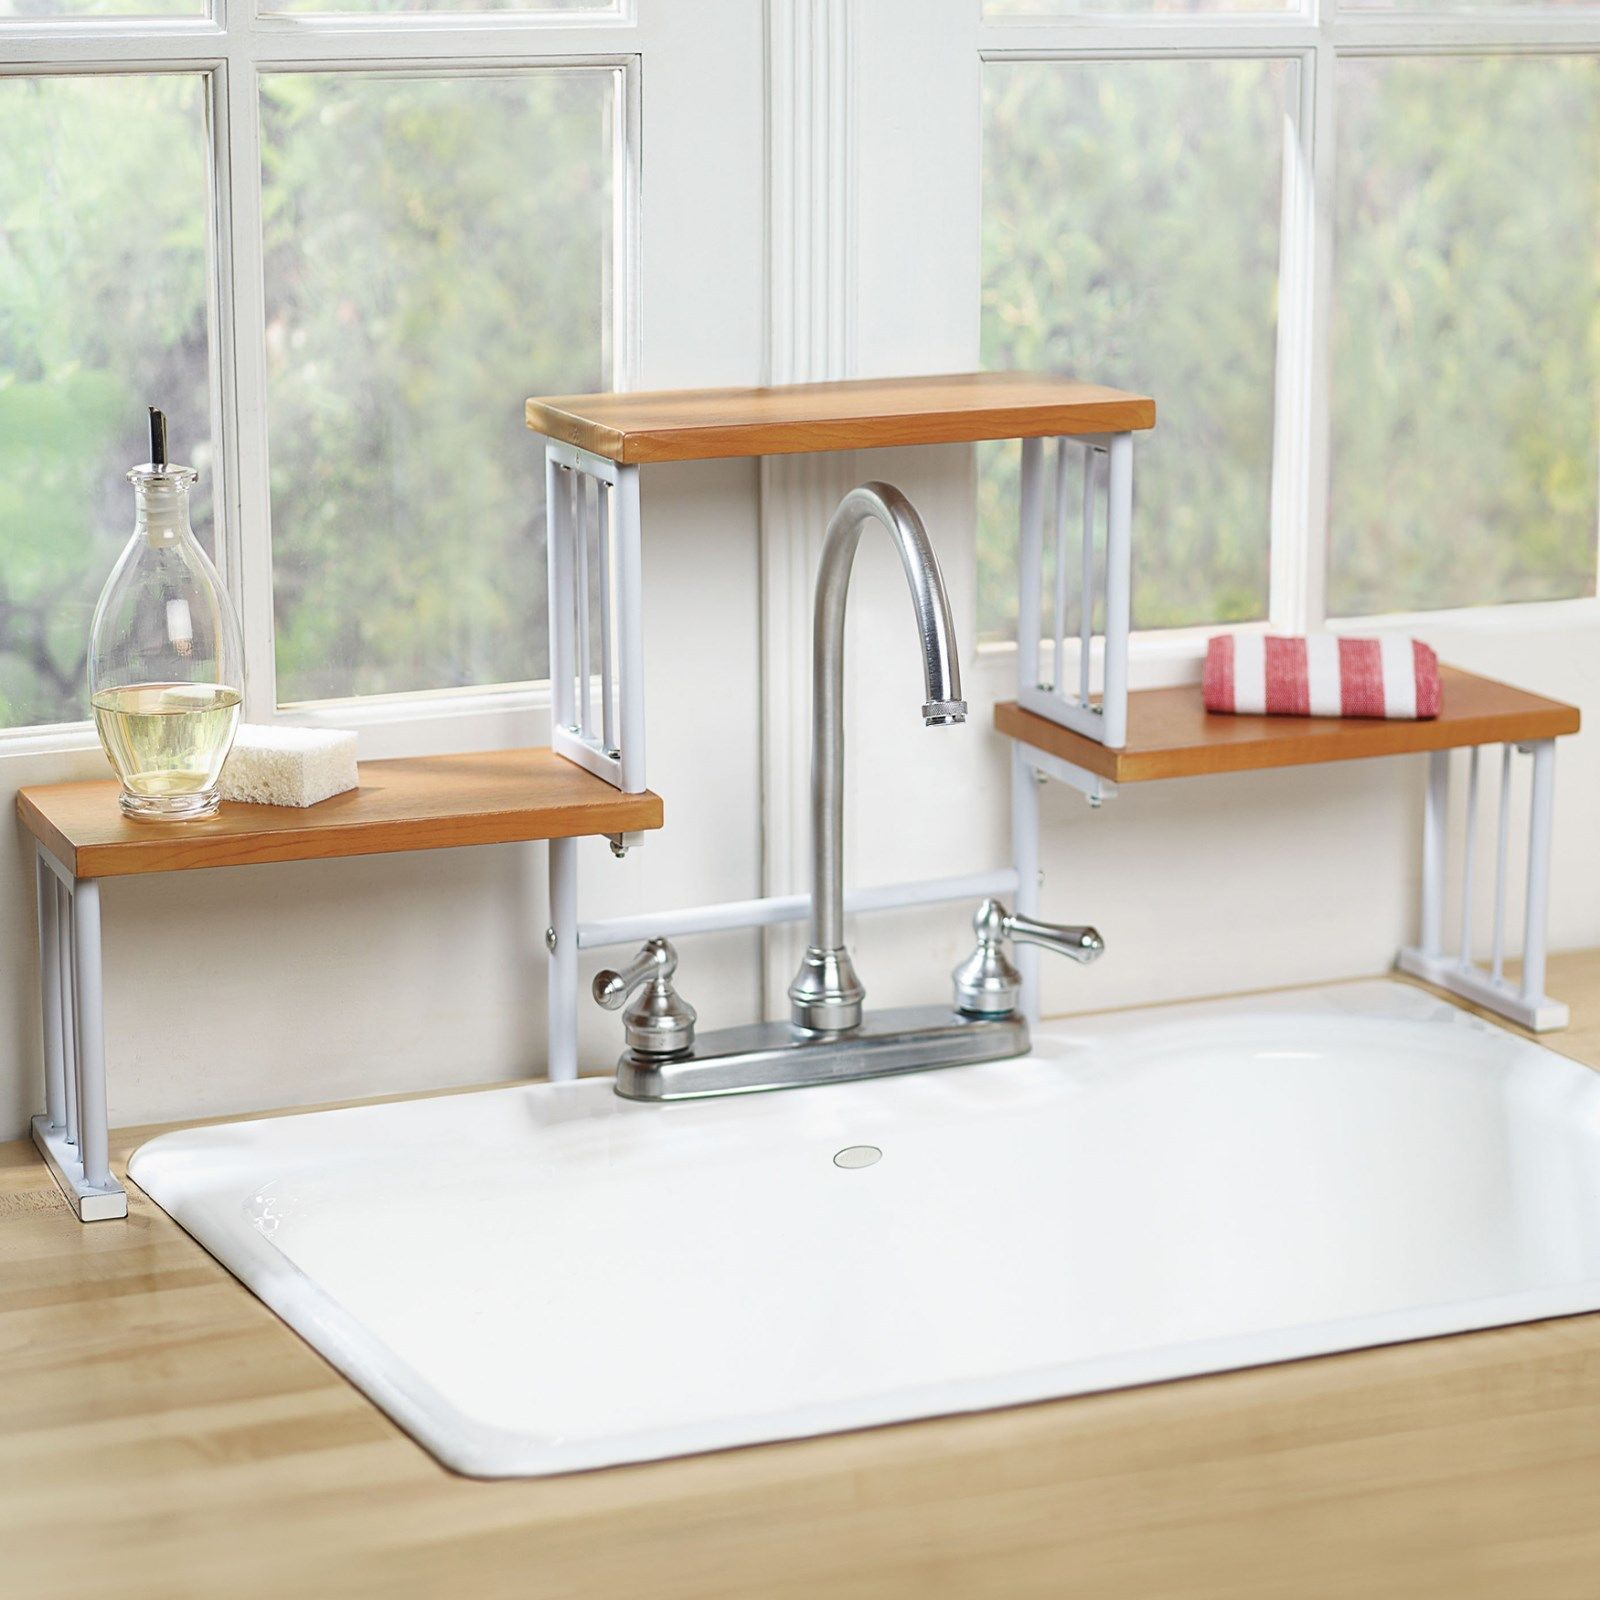 2 Tier Over The Sink Shelf Kitchen Faucet Space Saver